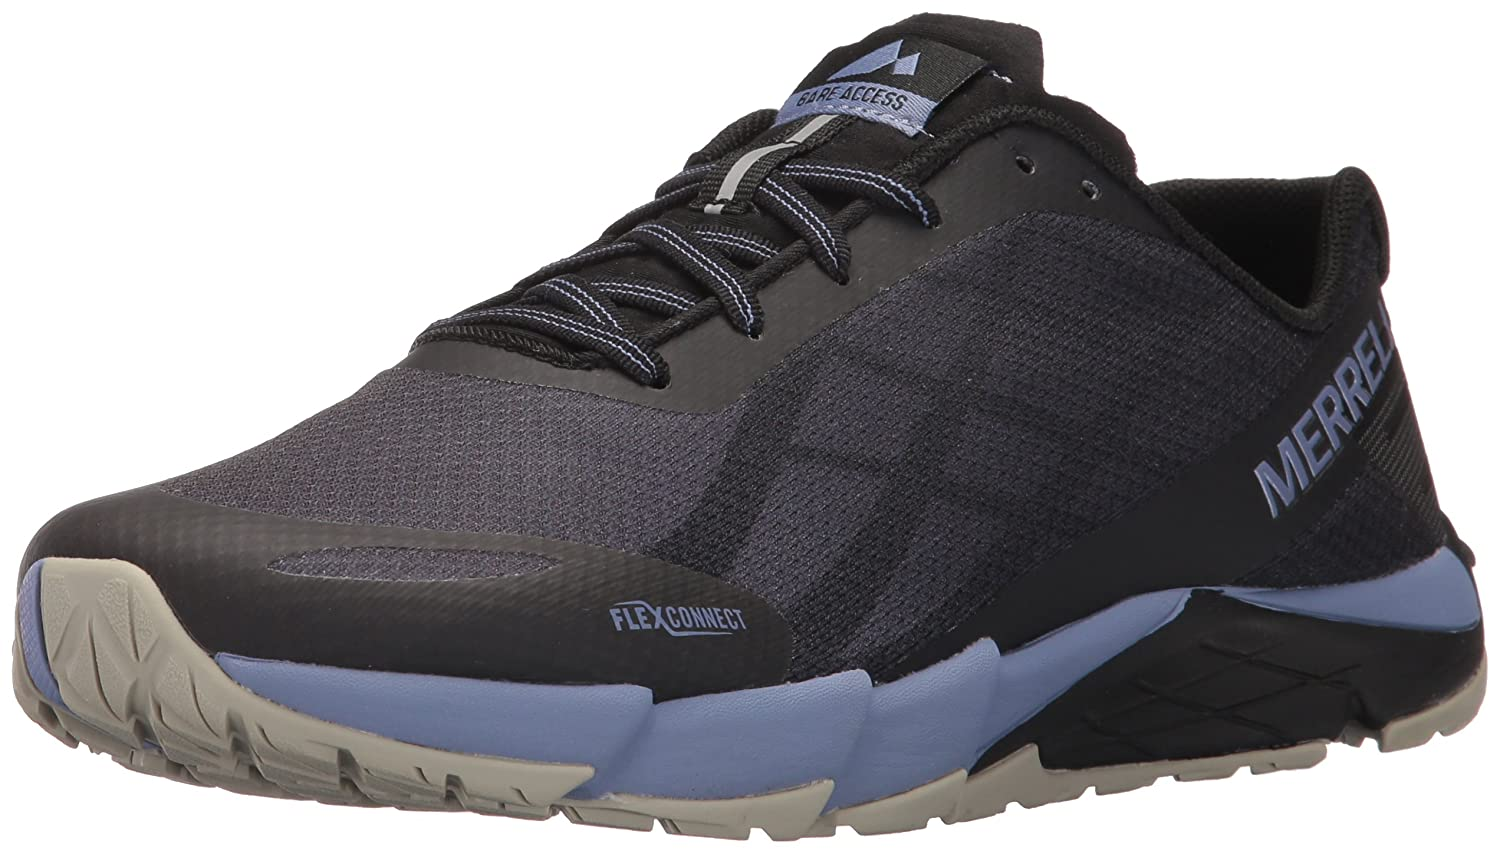 Merrell Women's Bare Access Flex Trail US|Black/Metallic Runner B01N5SDZQU 7.5 M US|Black/Metallic Trail Lilac 1ed1bf